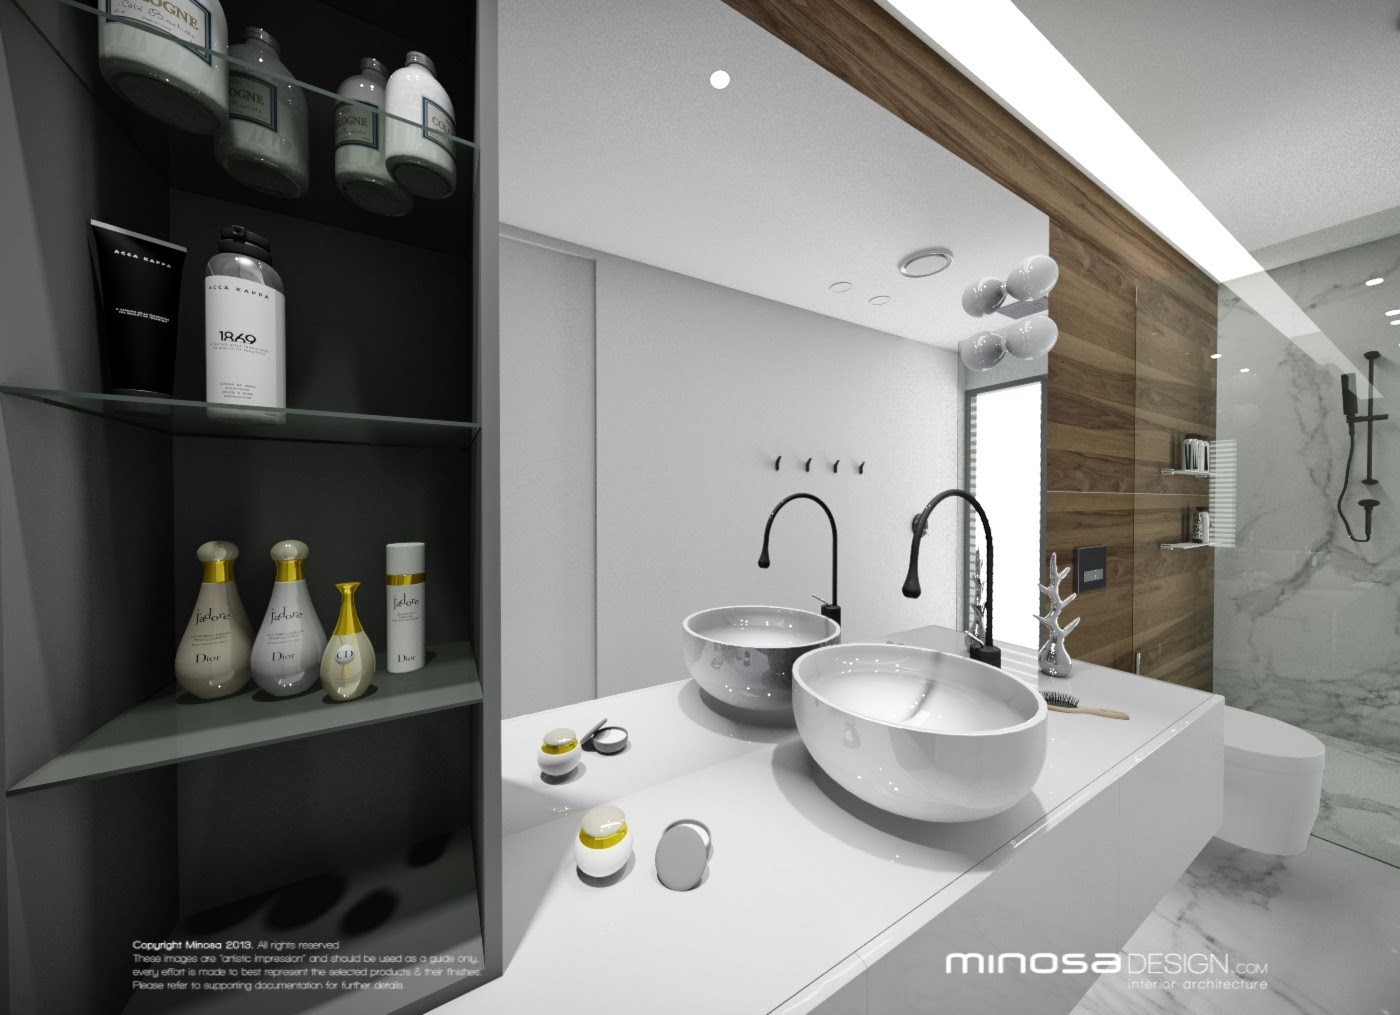 Minosa: Luxury Bathroom Design - By Minosa on luxury bathroom vanity mirrors, luxury bathroom walls, kitchenette sinks, luxury bathroom vinyl, luxury bathroom doors, luxury sink faucets, luxury bathroom colors, luxury modern bathrooms, luxury farmhouse sink, luxury master bathrooms, luxury bathroom glass tile, luxury 2 sink vanities, luxury bathroom layouts, luxury bathroom granite, luxury commercial bathroom, luxury small bathroom remodel, luxury bathtubs, luxury bathroom floor tile, luxury bathroom trash cans, blue toilets sinks,